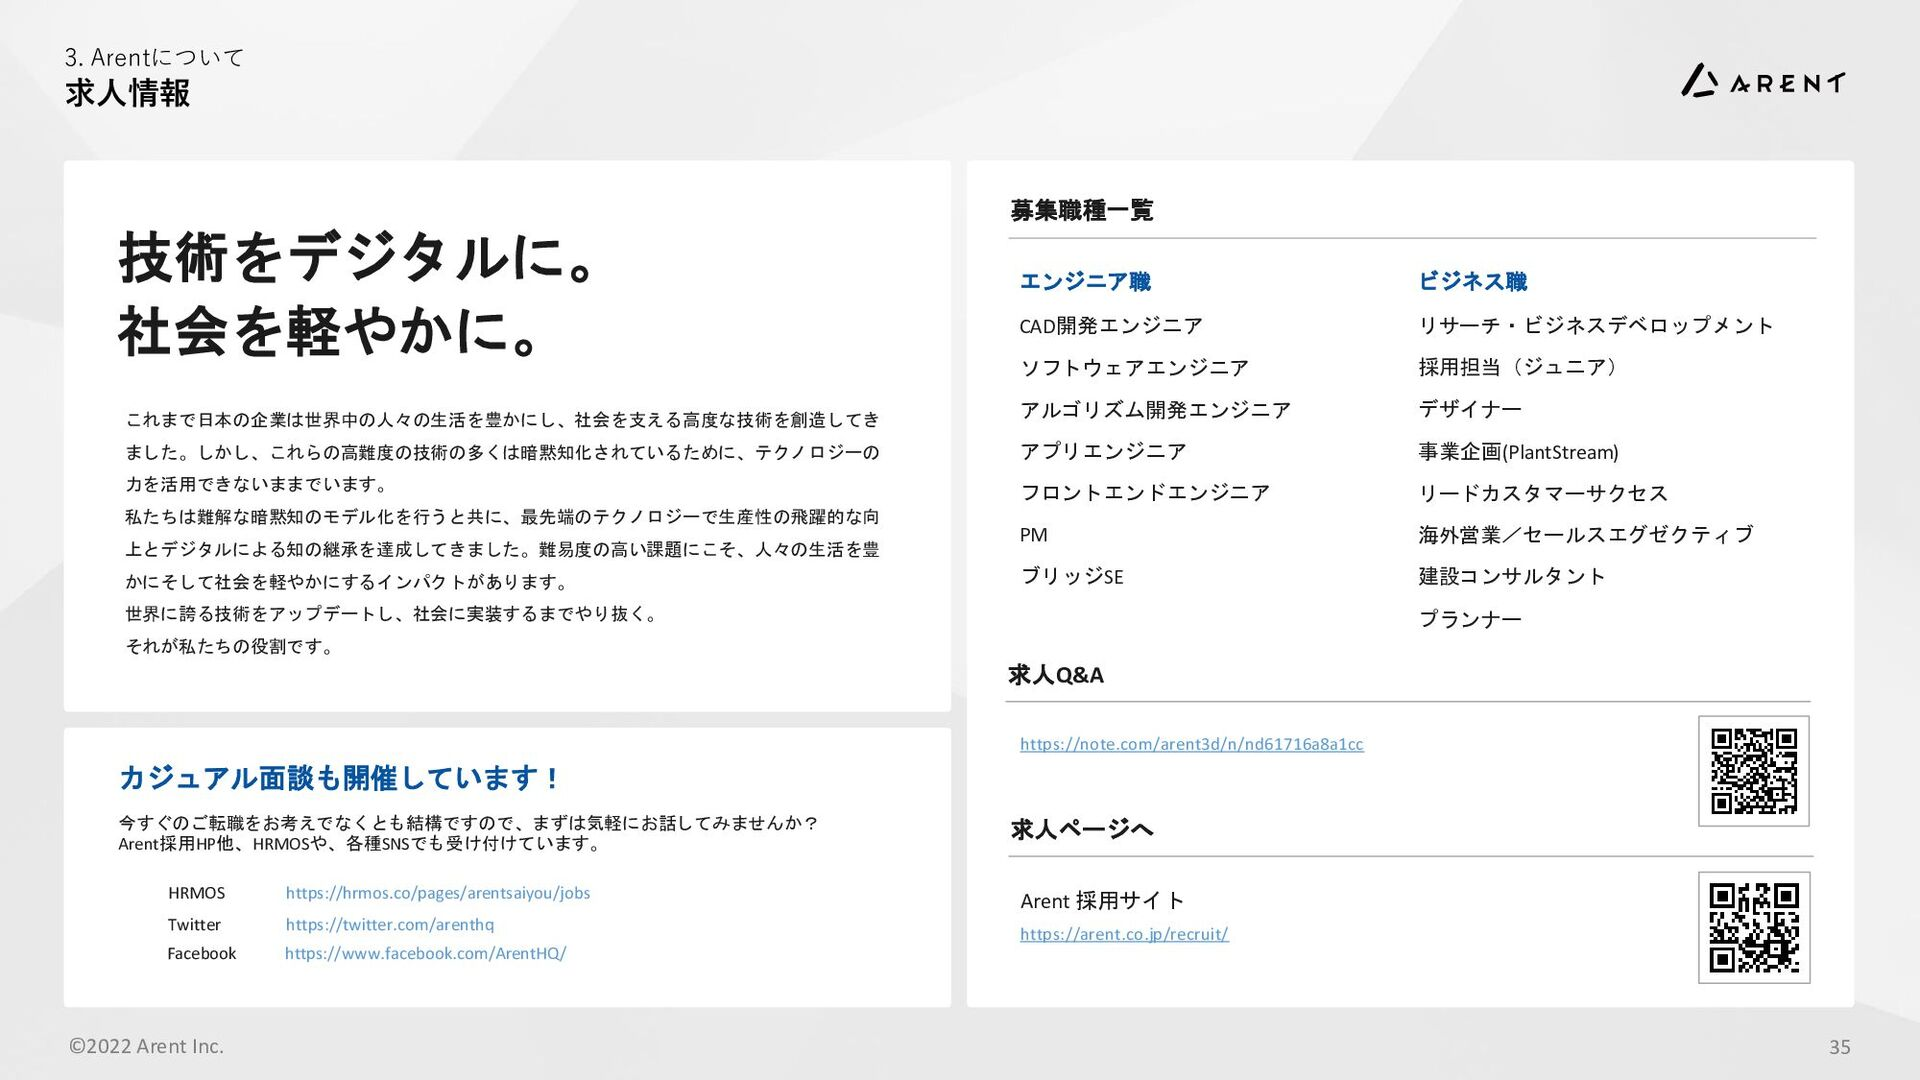 THANK YOU! https://arent.co.jp/